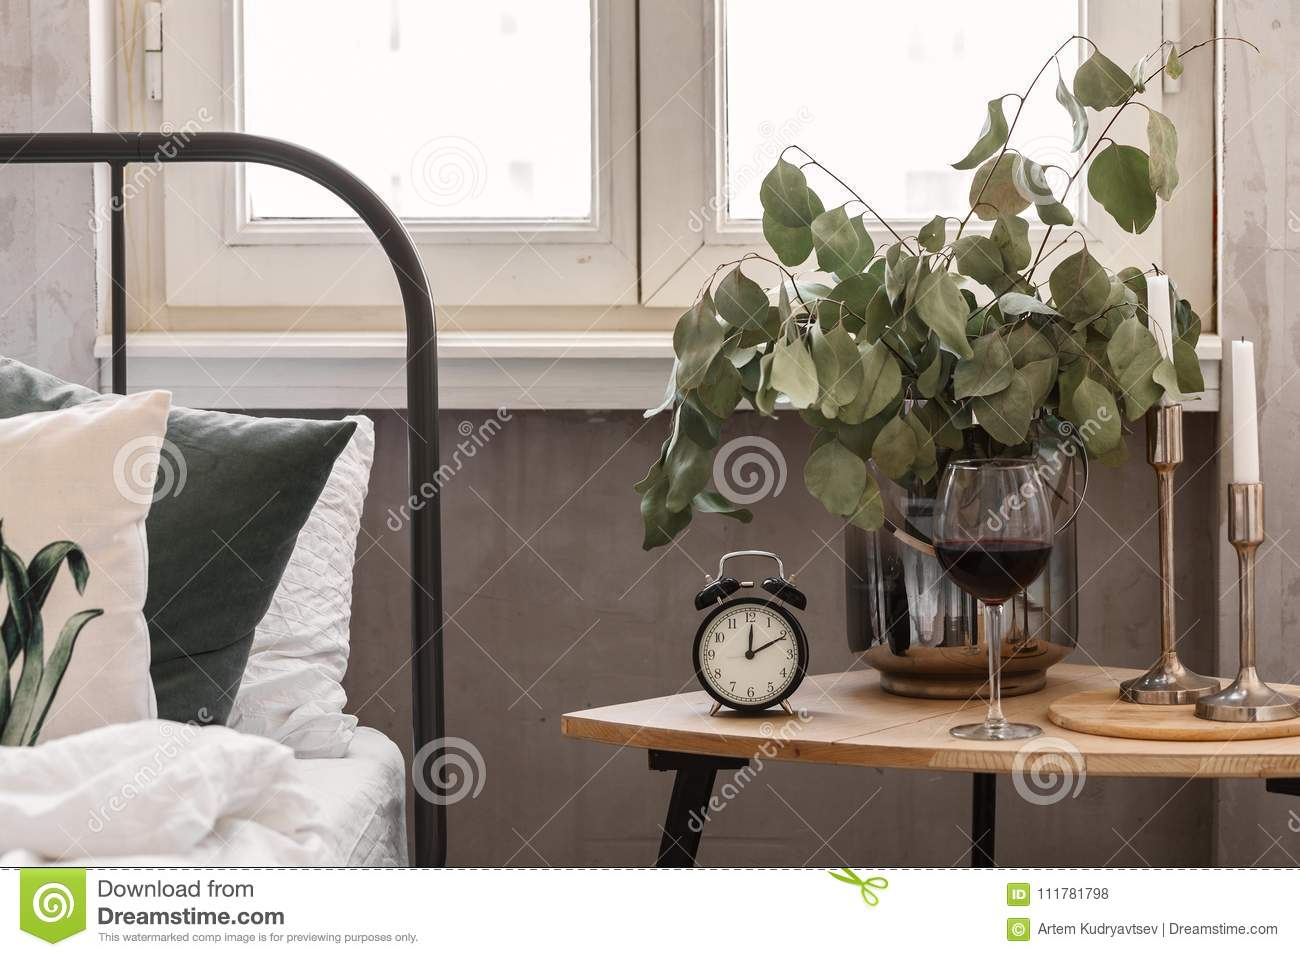 Morning. Bedside table